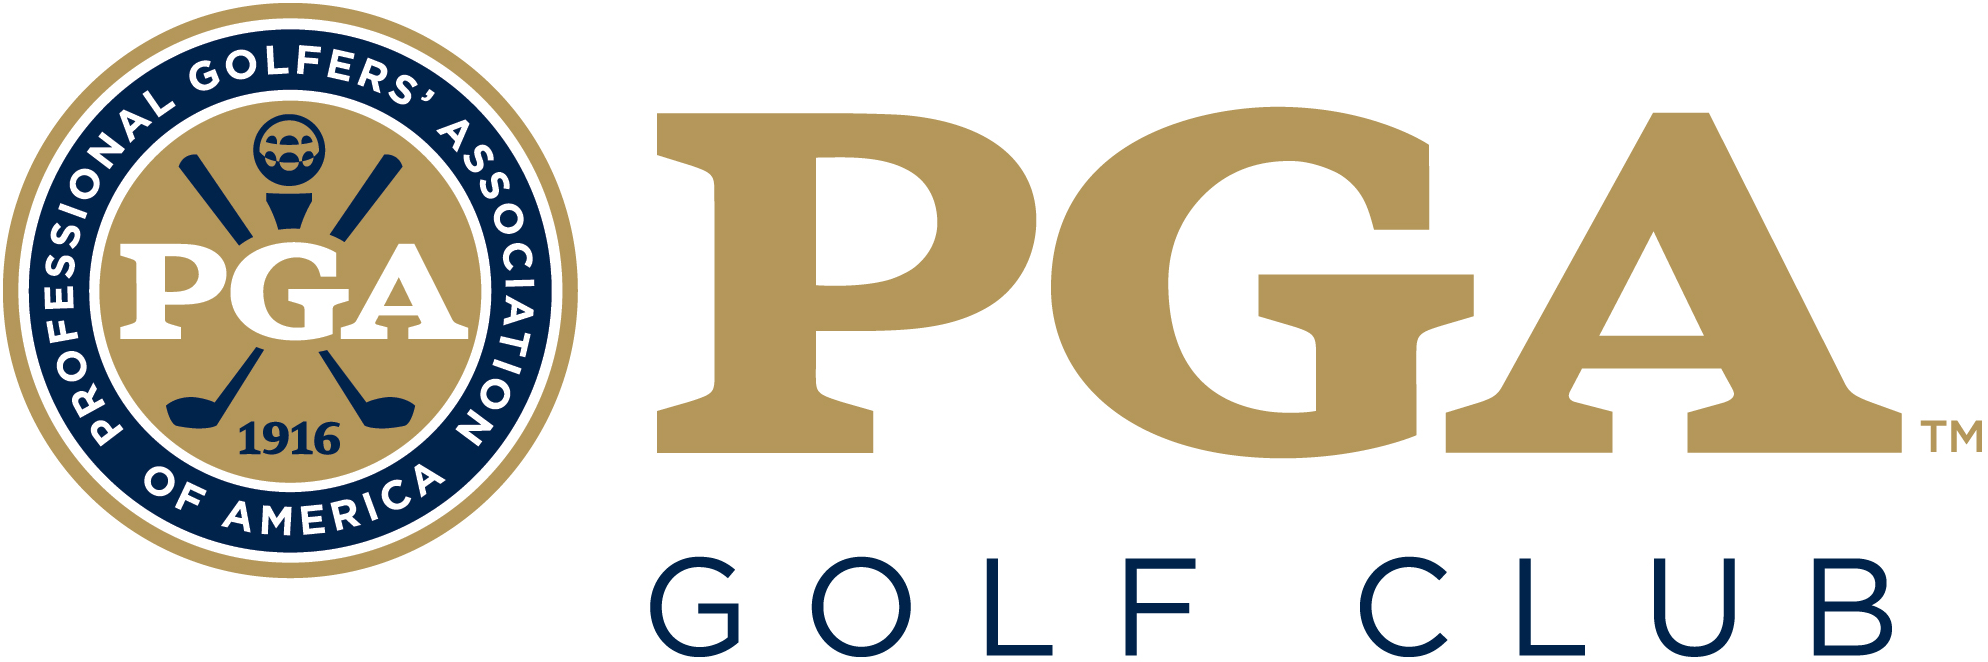 Sip & Chip (HT) - PGA | Center for Golf Learning & Performance